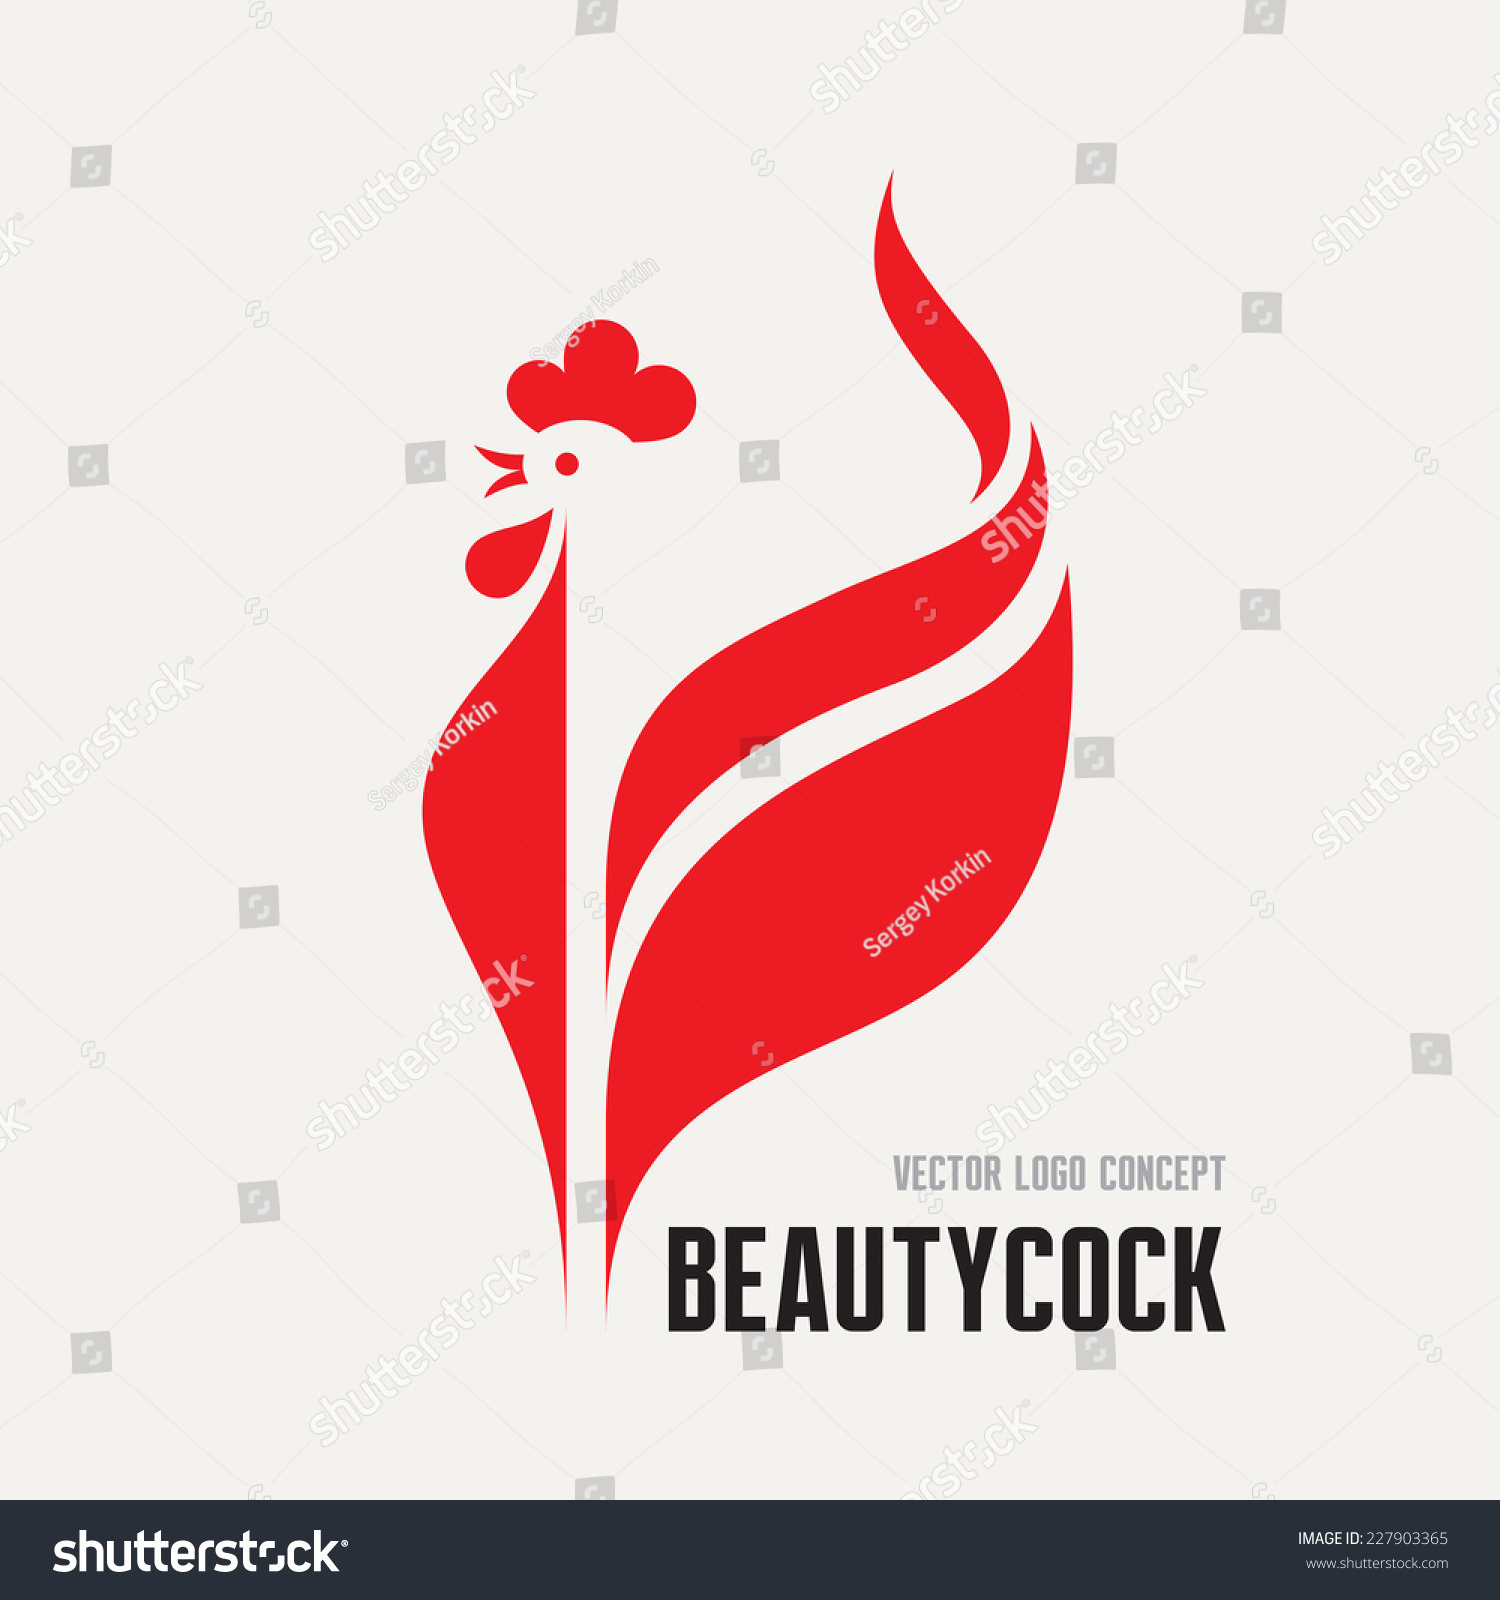 Beauty cock rooster vector logo concept Bird cock minimal illustration Vector logo template Cock design element